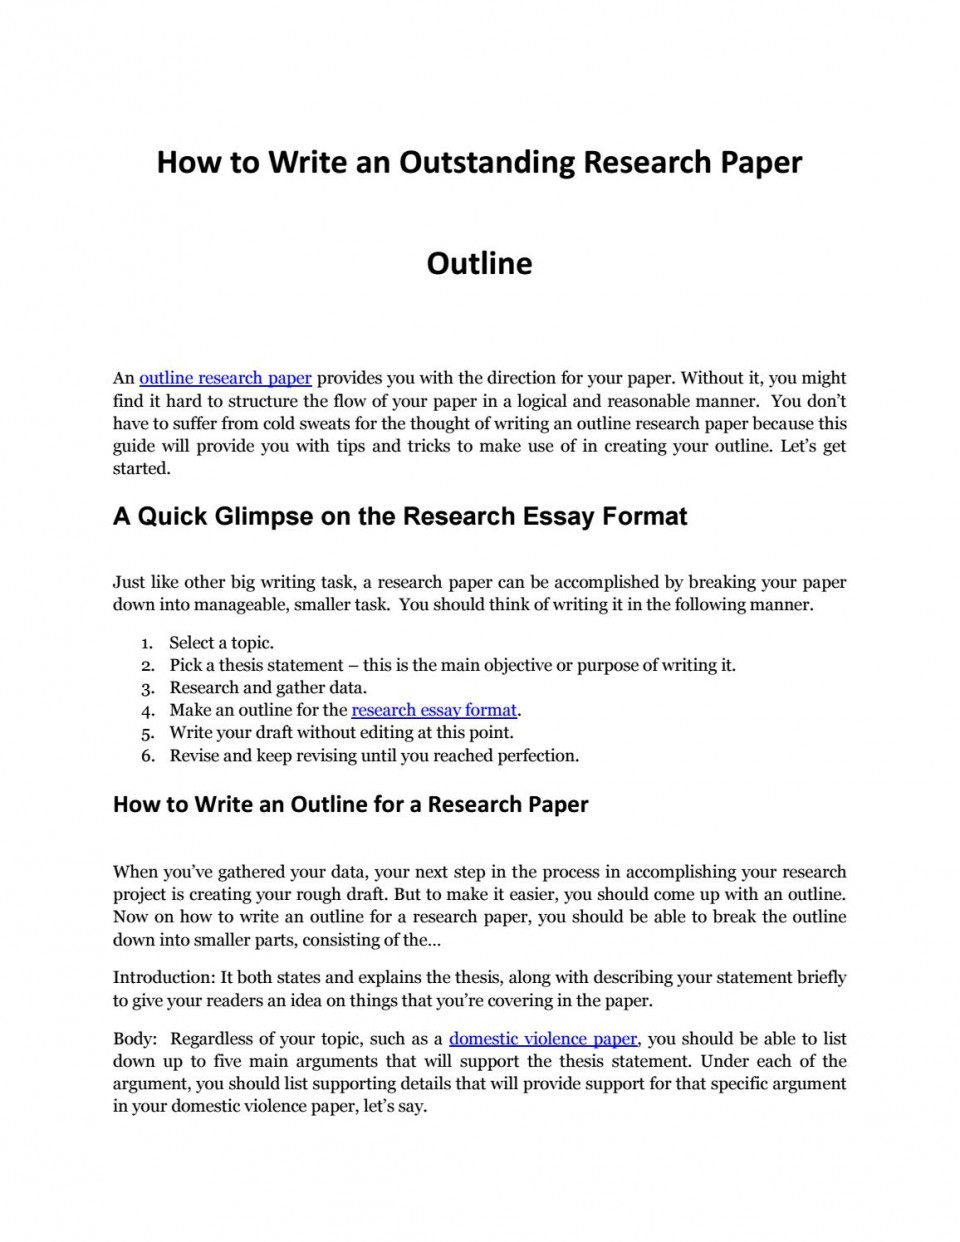 019 Outlines For Research Paper Page 1 Top A Sample Outline Apa Style On Bullying In Schools Writing An 960